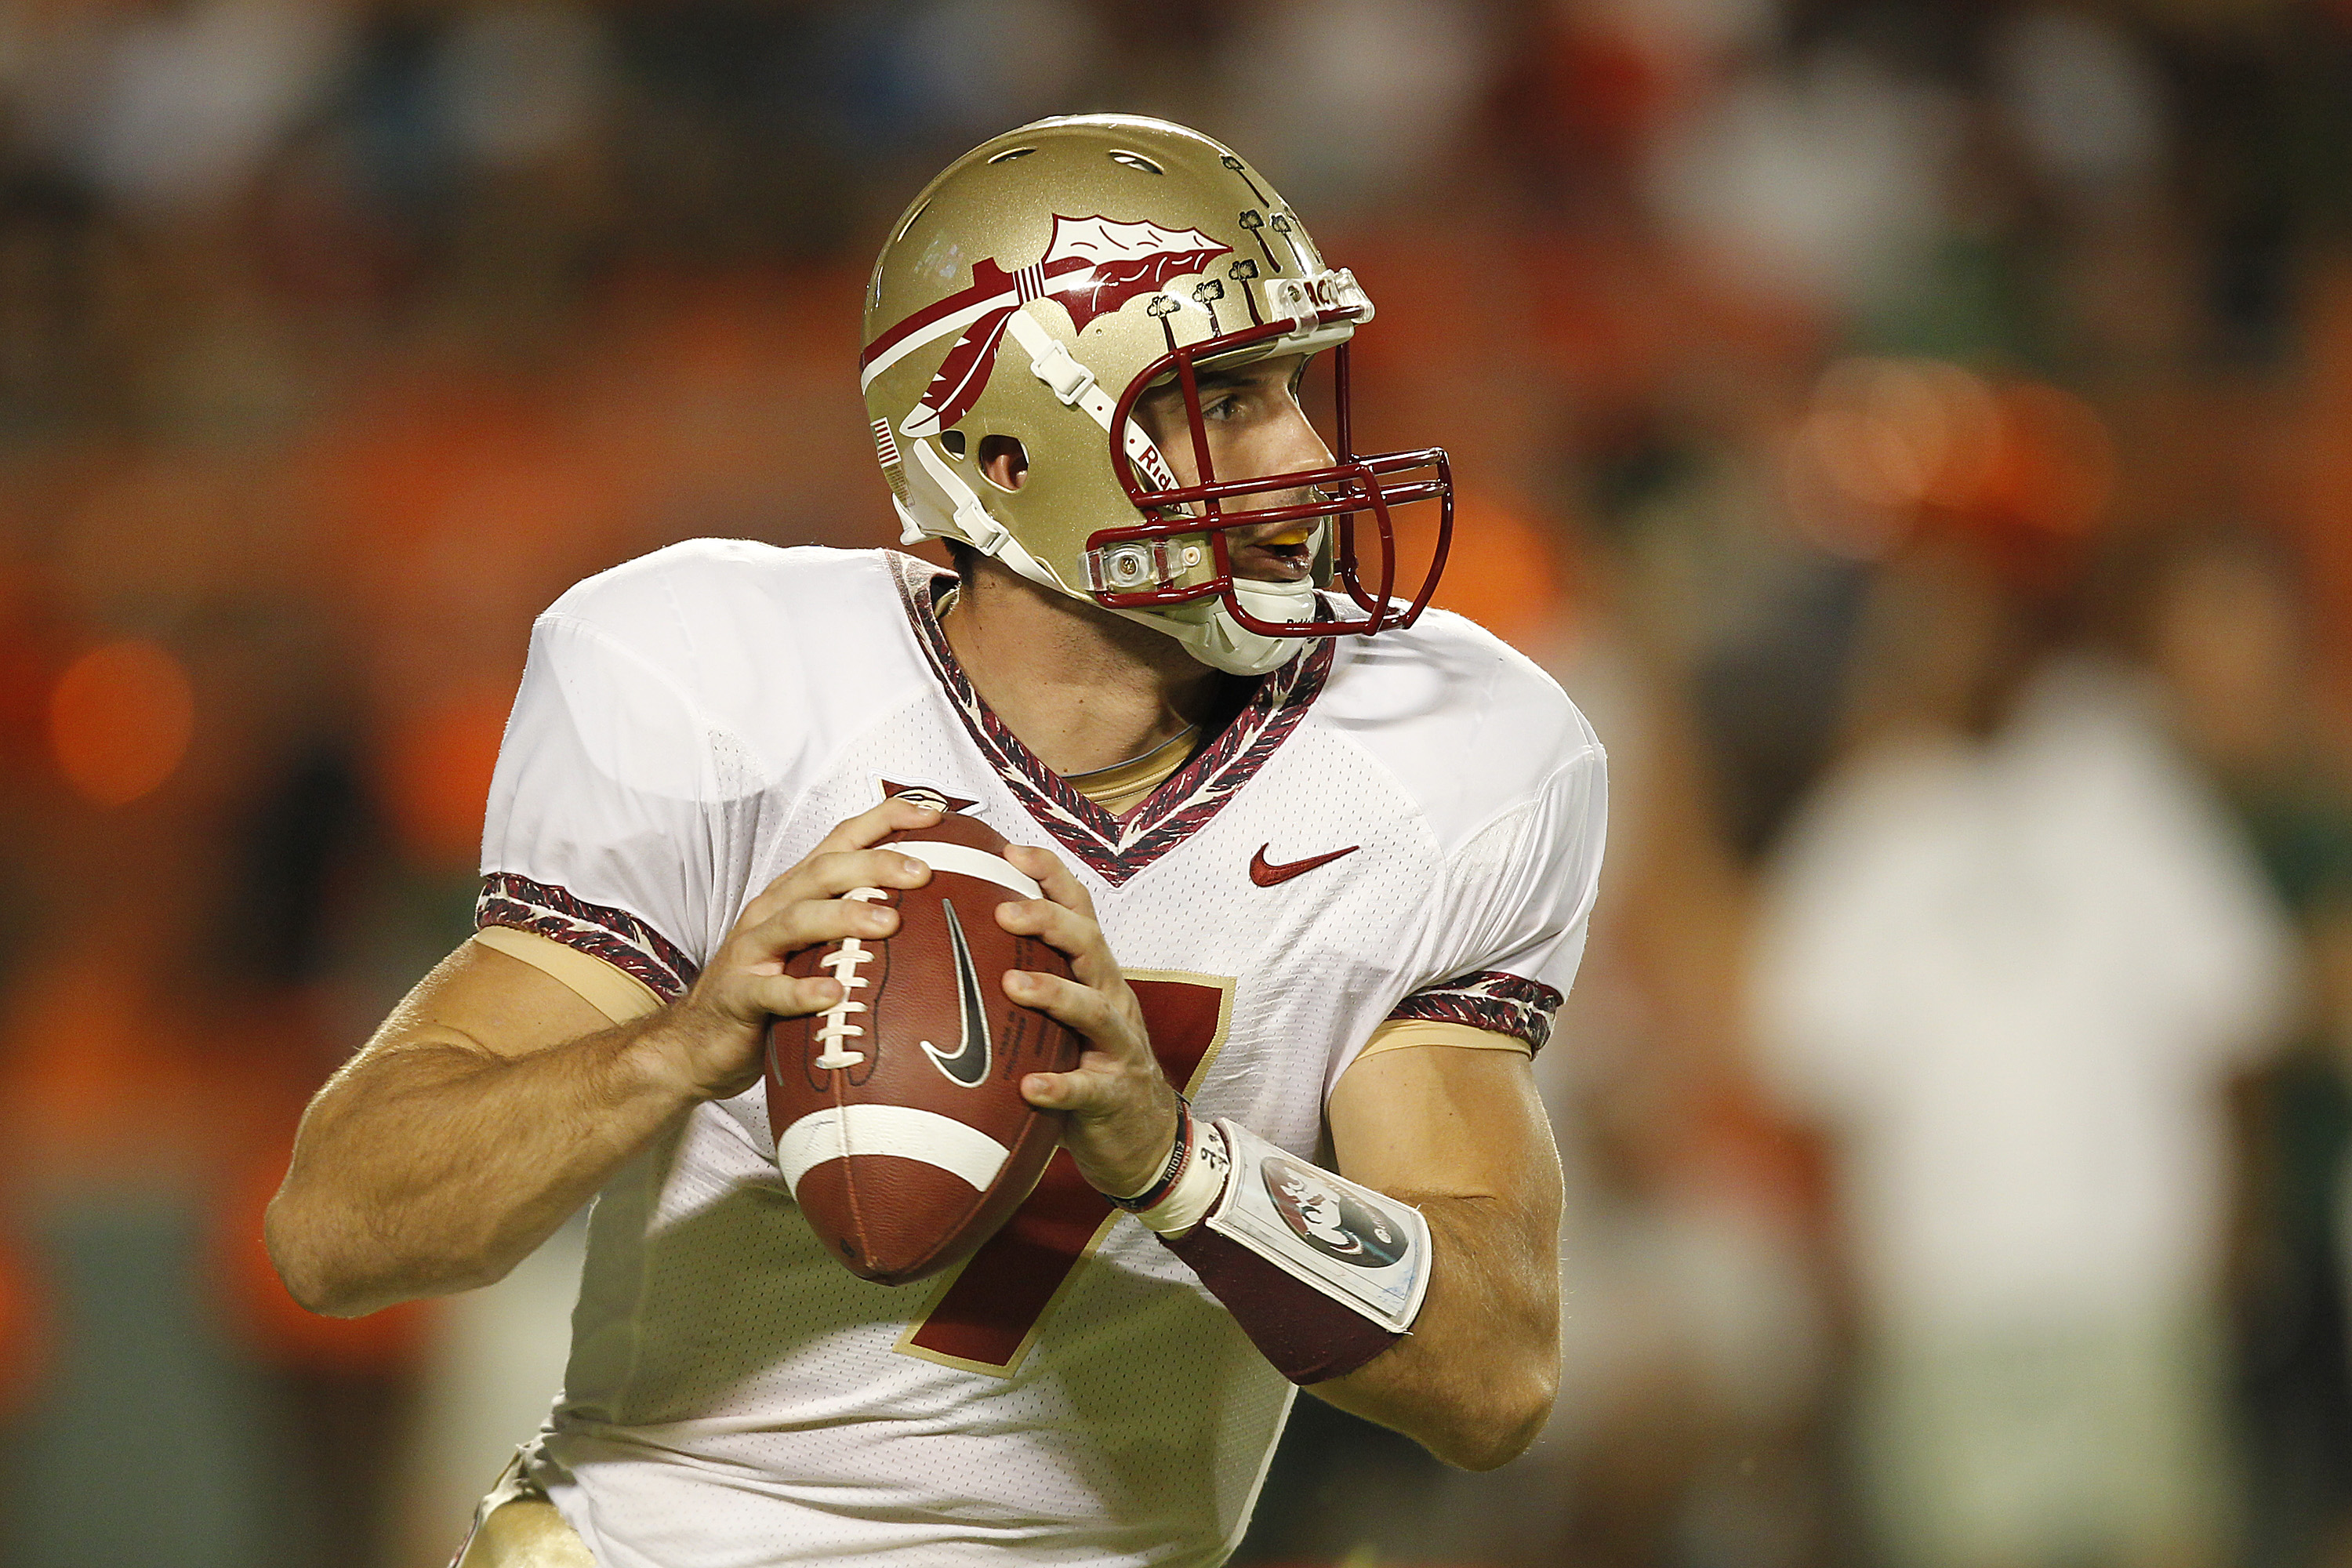 MIAMI, FL - OCTOBER 9: Christian Ponder #7 of the Florida State Seminoles runs out of the pocket to pass the ball against the Miami Hurricanes on October 9, 2010 at Sun Life Stadium in Miami, Florida. (Photo by Joel Auerbach/Getty Images)